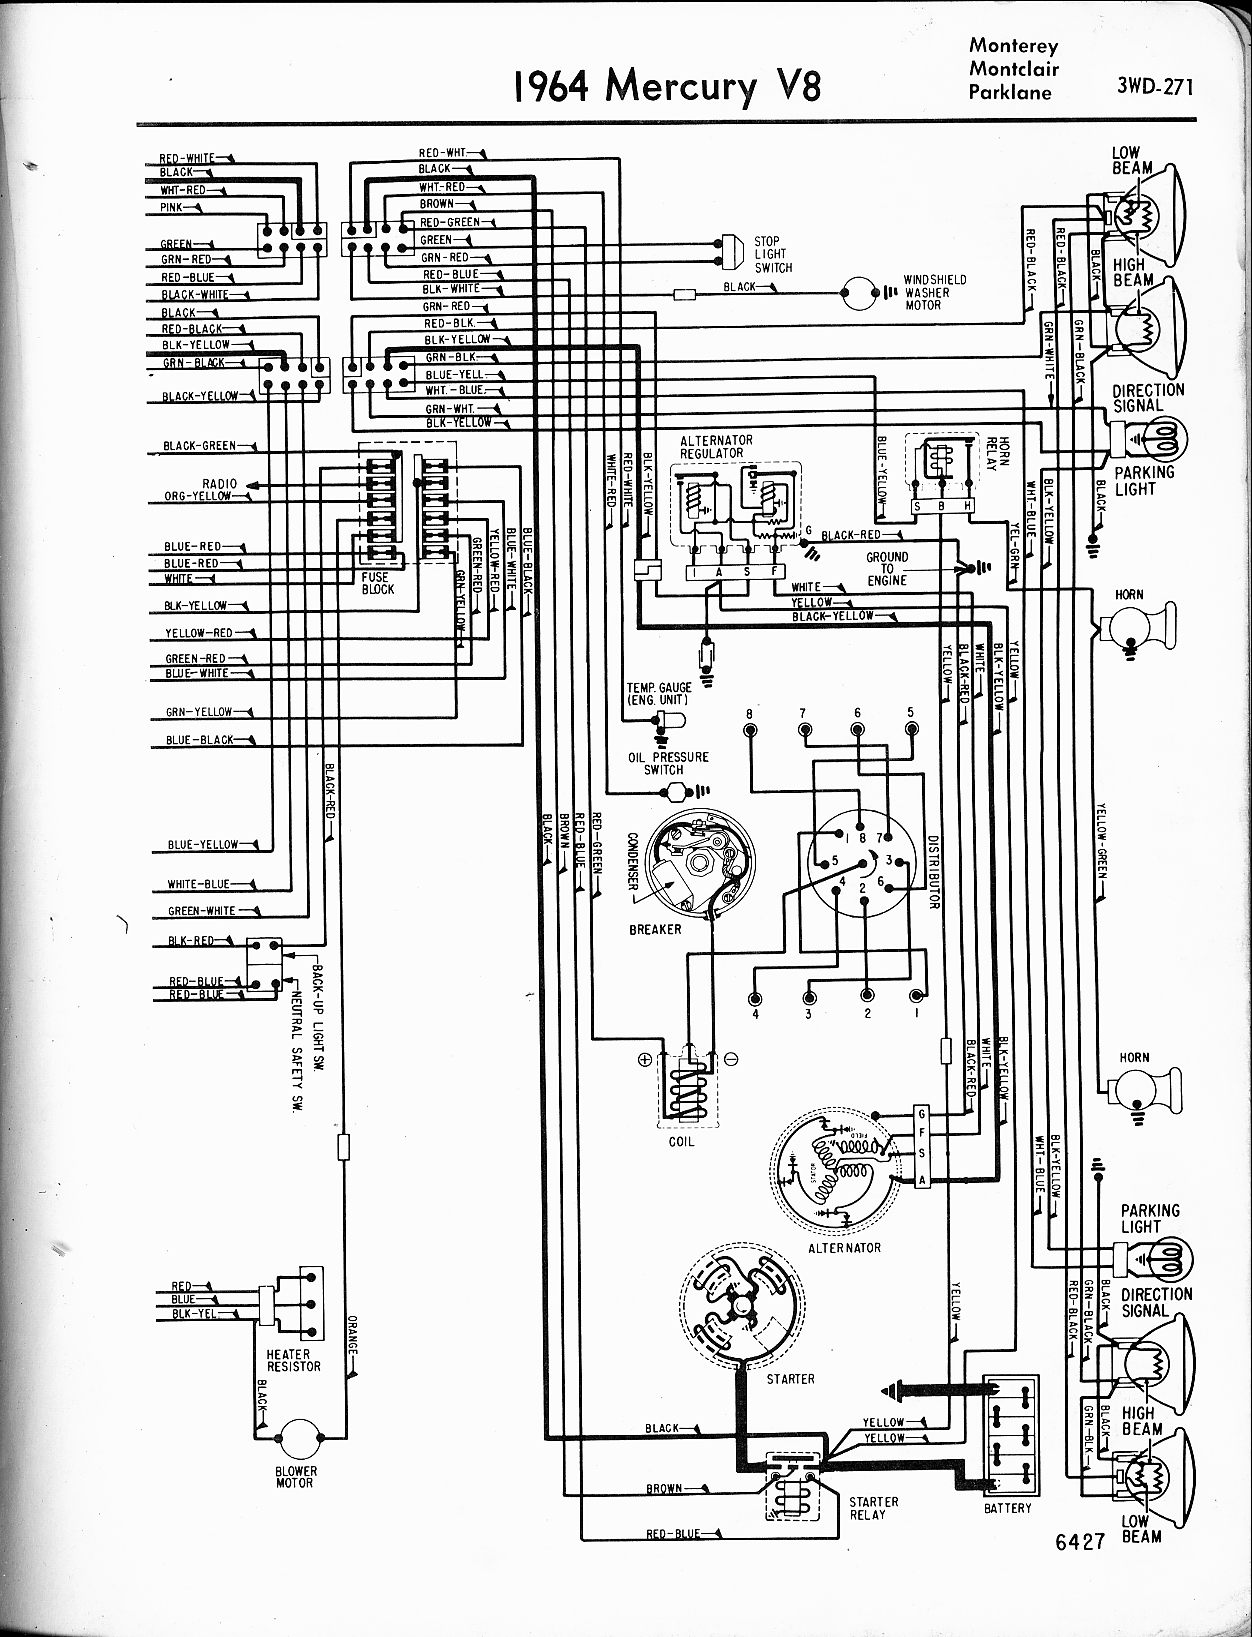 MWire5765 271 mercury wiring diagrams the old car manual project 63 falcon wiring diagram at bayanpartner.co